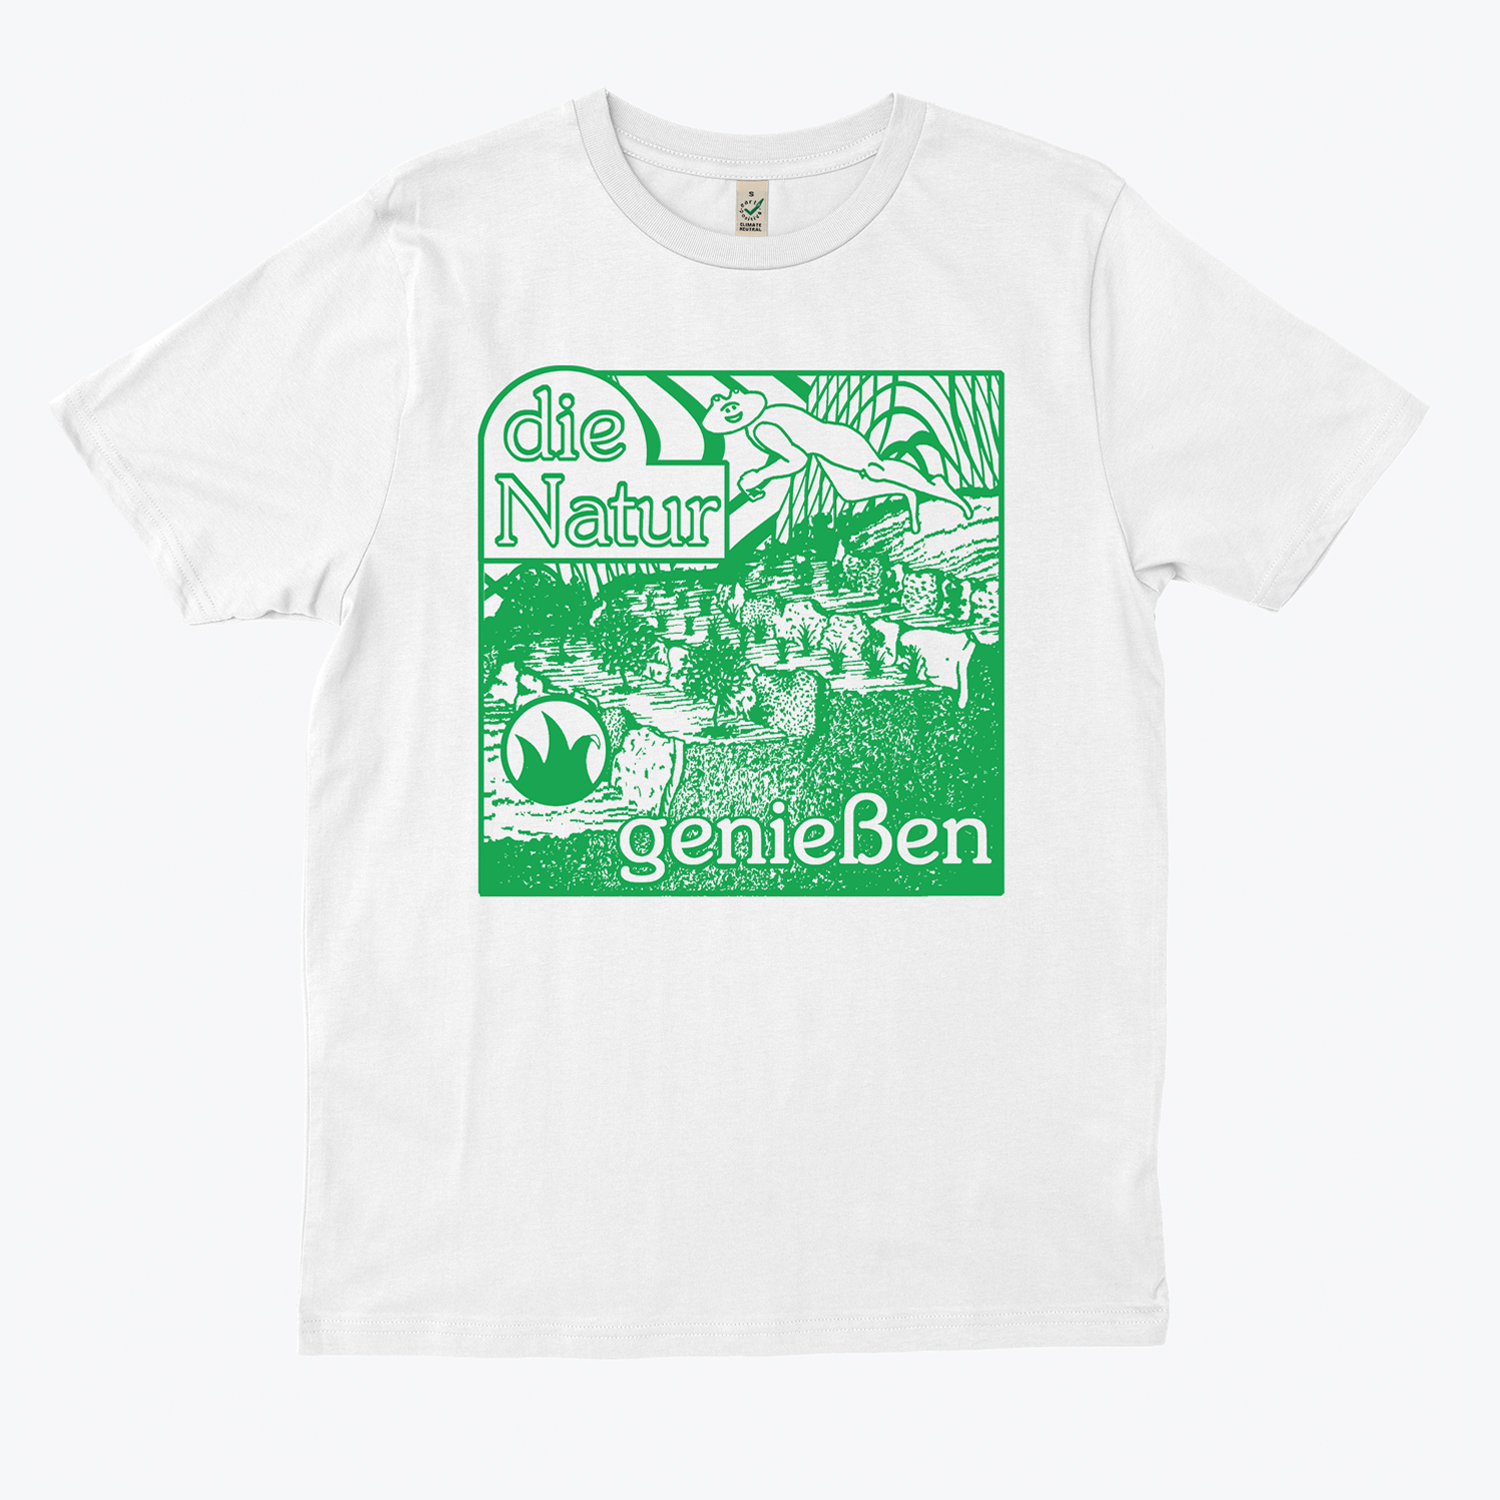 Jack Taylor & Molly Rose Dyson's 'Die Natur' T-shirt